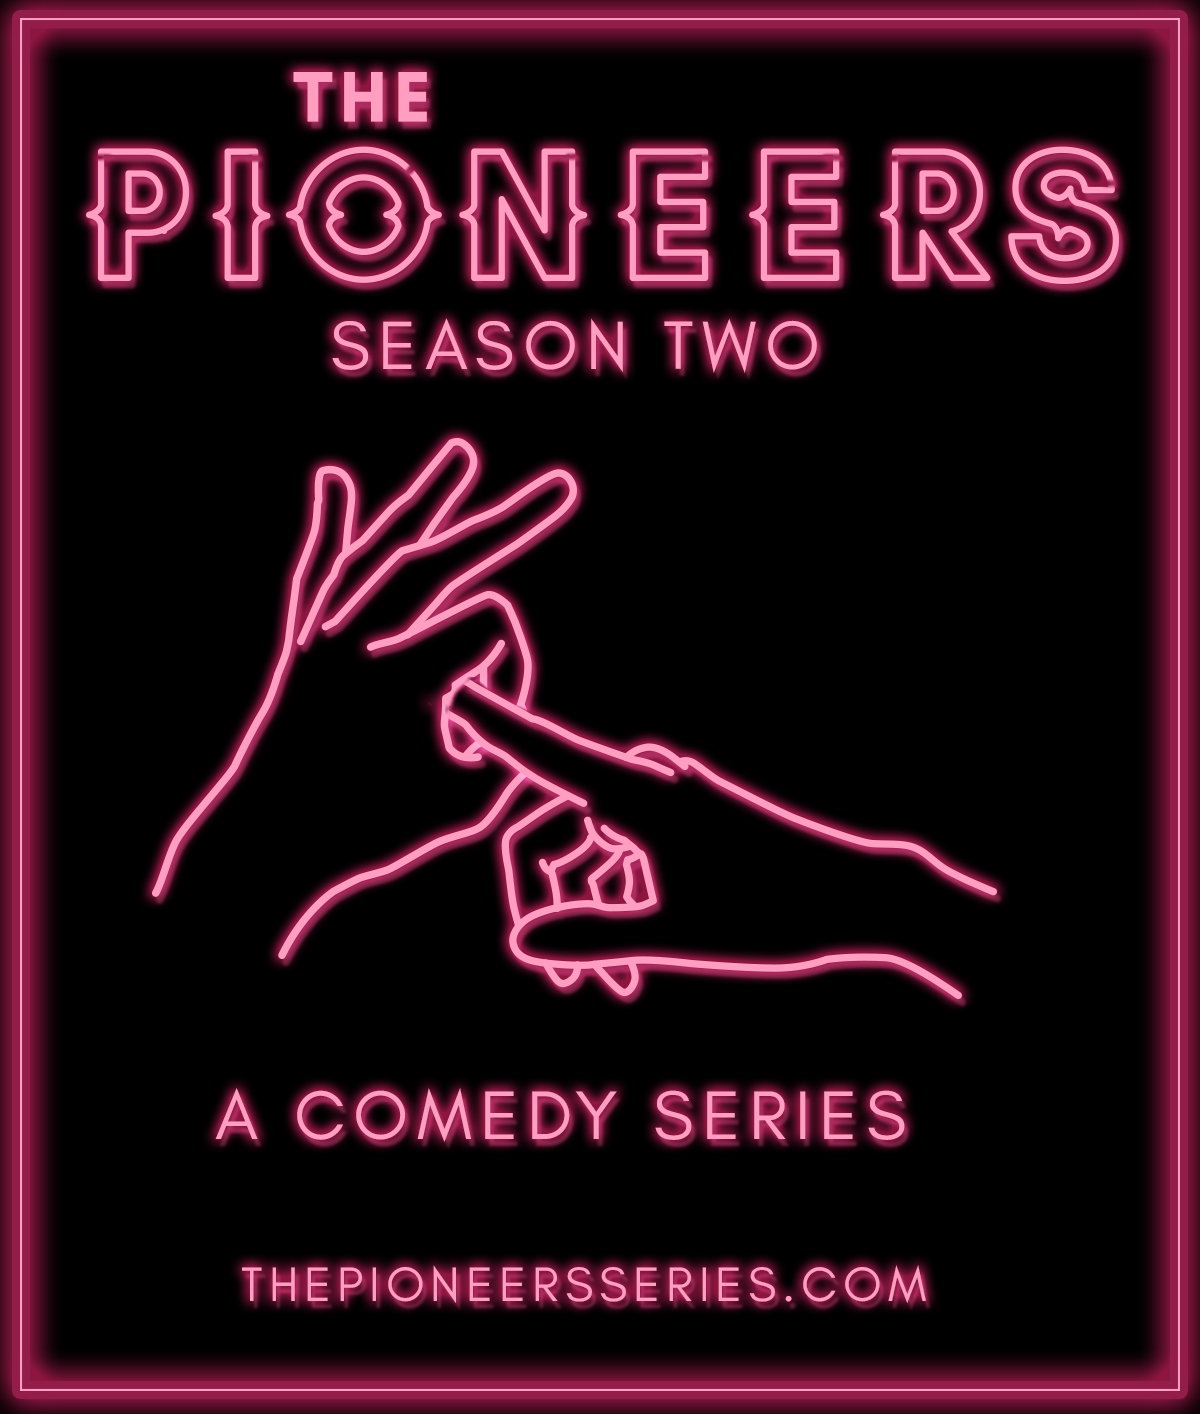 """""""The Pioneers"""" is a comedy about a couple who decide to open up their relationship before they tie the knot, but as they plan the wedding and try to get lucky, they find themselves in increasingly bizarre situations with no casual sex in sight."""